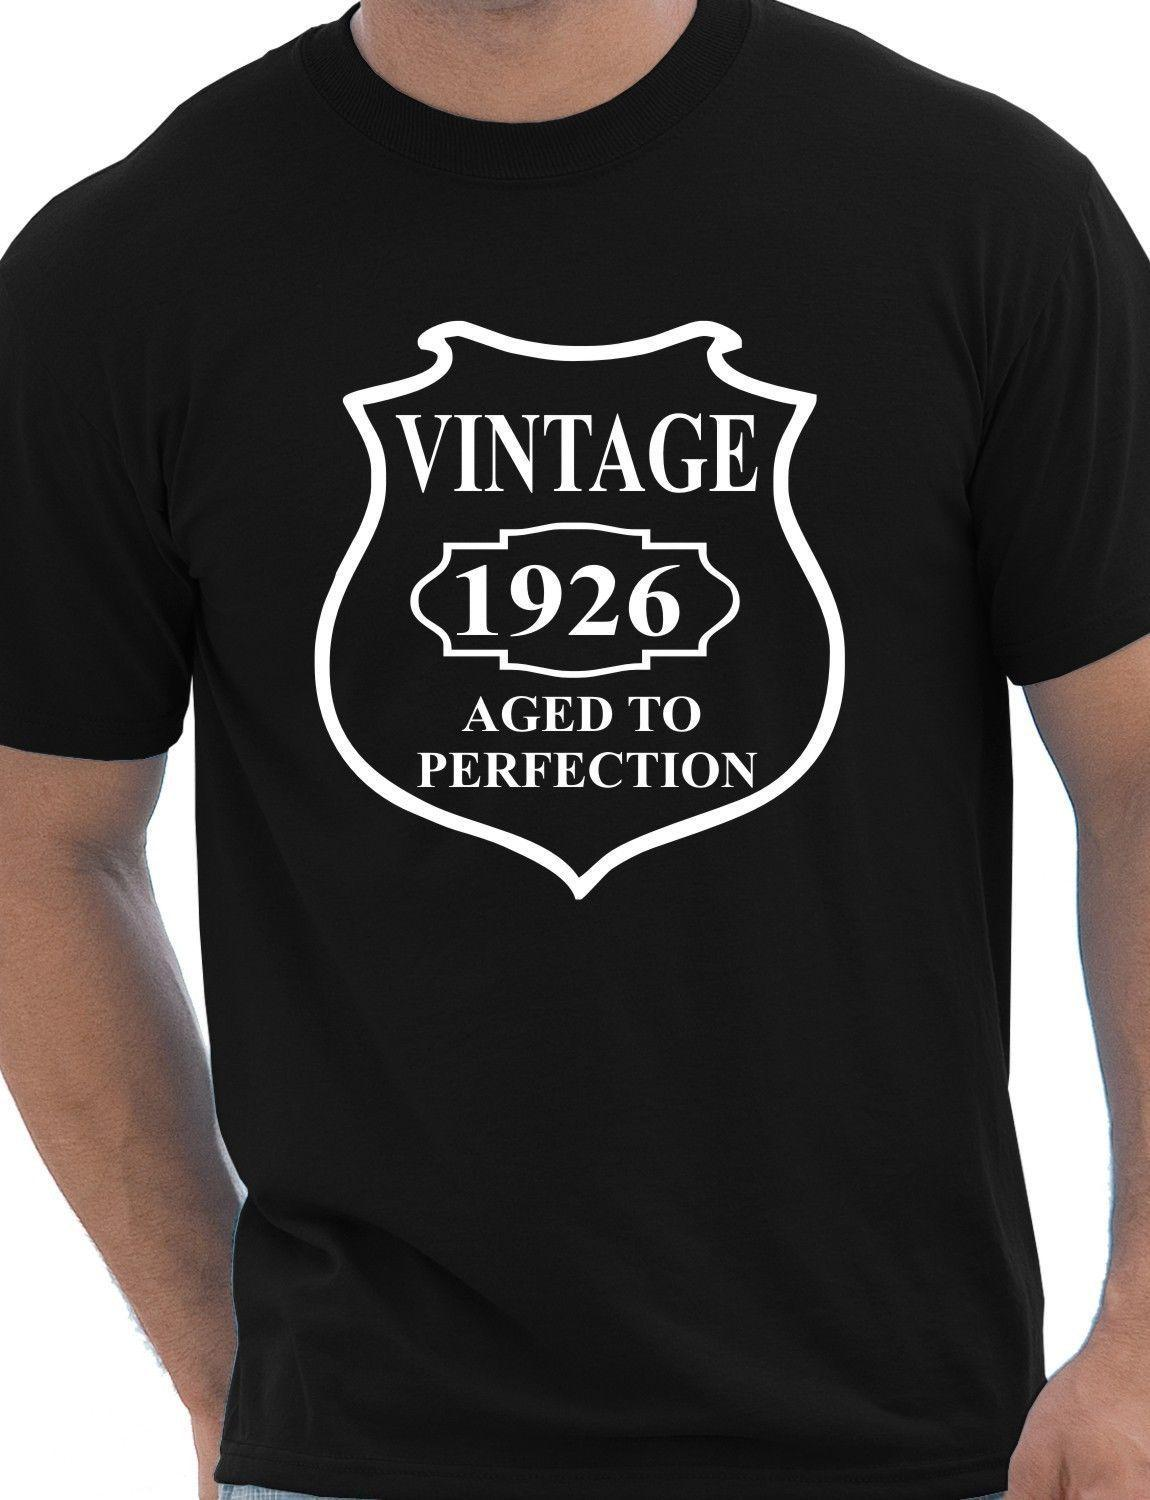 Details Zu 90th Birthday Vintage 1926 Mens Gift Unisex T Shirt Size S XXL Funny Casual Tee Retro Tees Weird Shirts From Universal Fashion